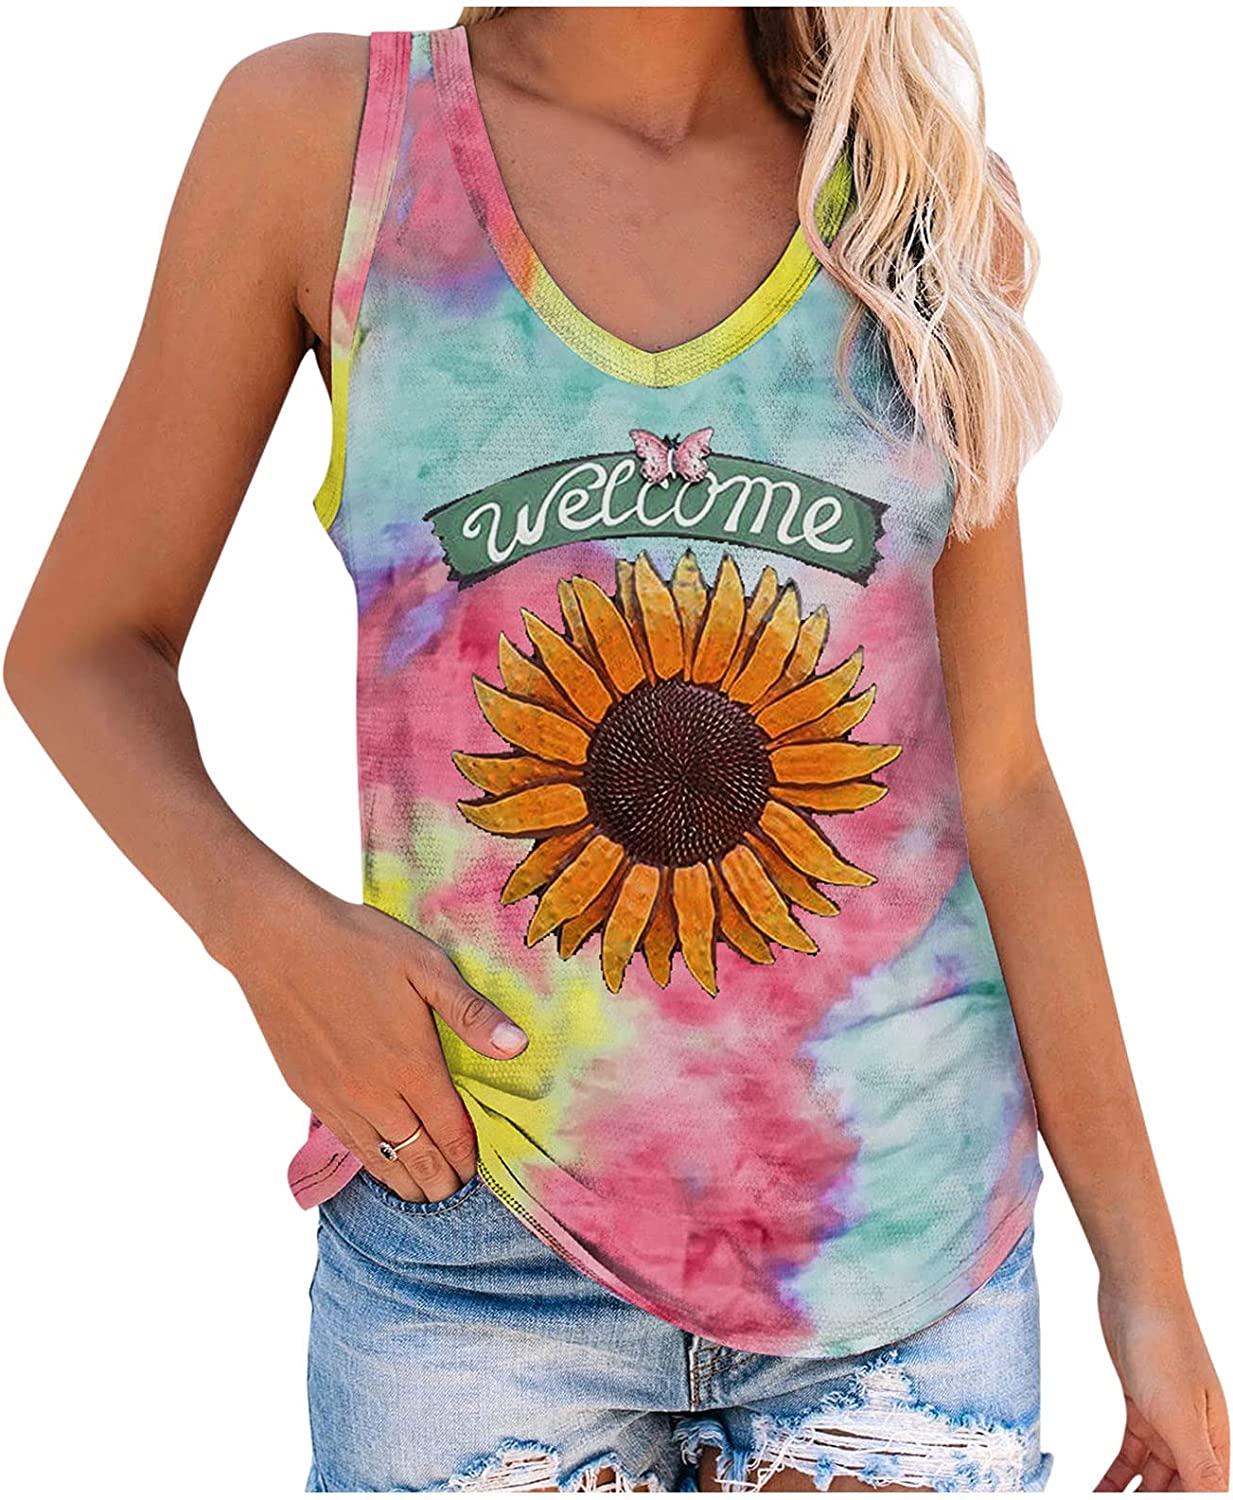 Pandaie Sunflower Sleeveless Shirts for Neck Baltimore Mall Dye Scoop Women Tie OFFicial site